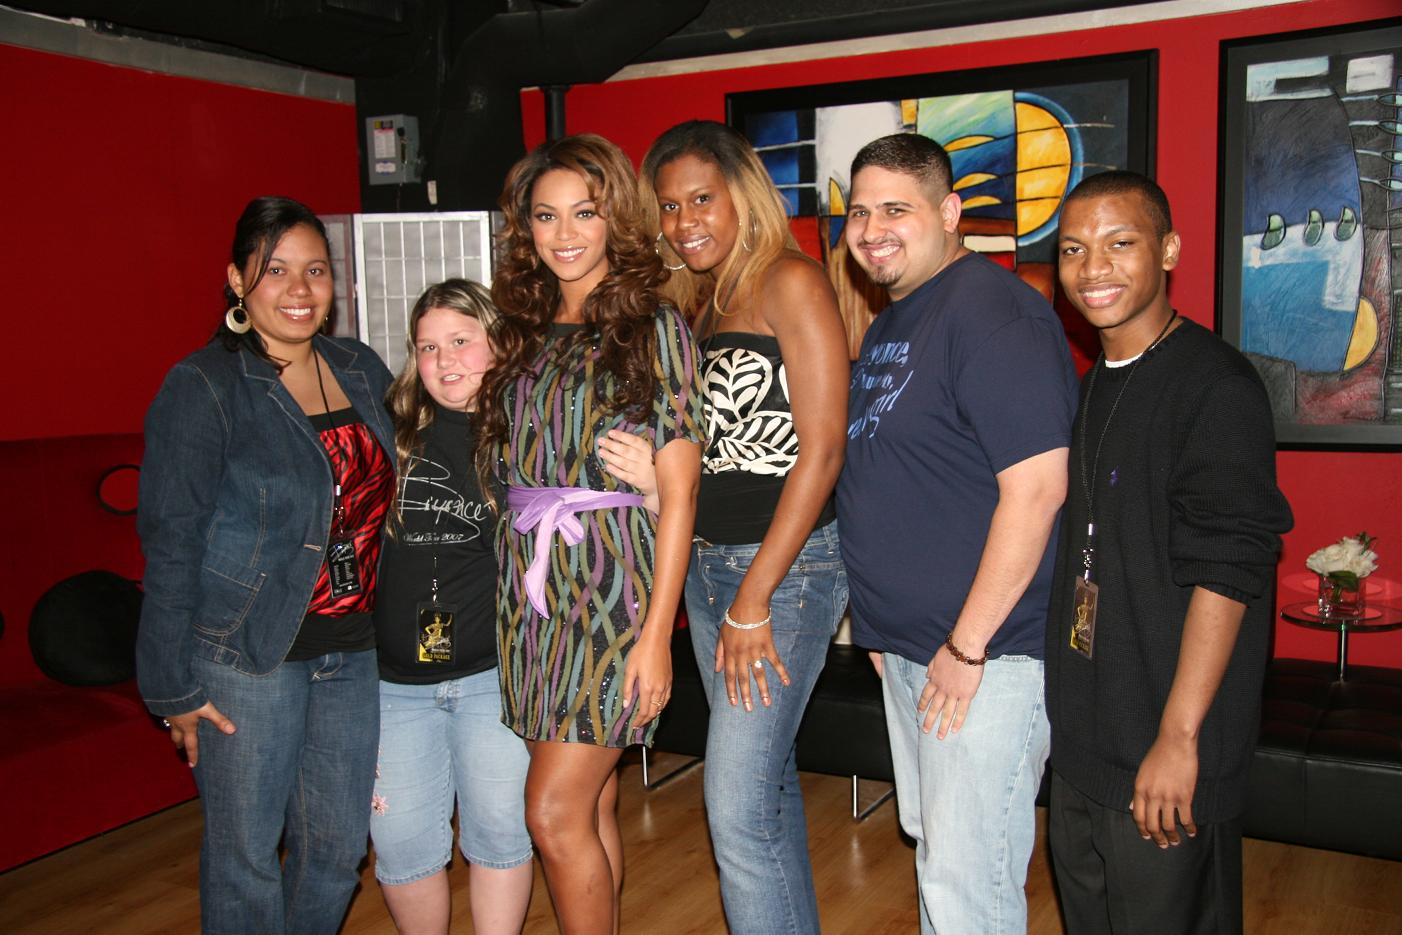 Happy Birthday Here\s a picture of me Tyrone Willis with along with some of her adoring fans!